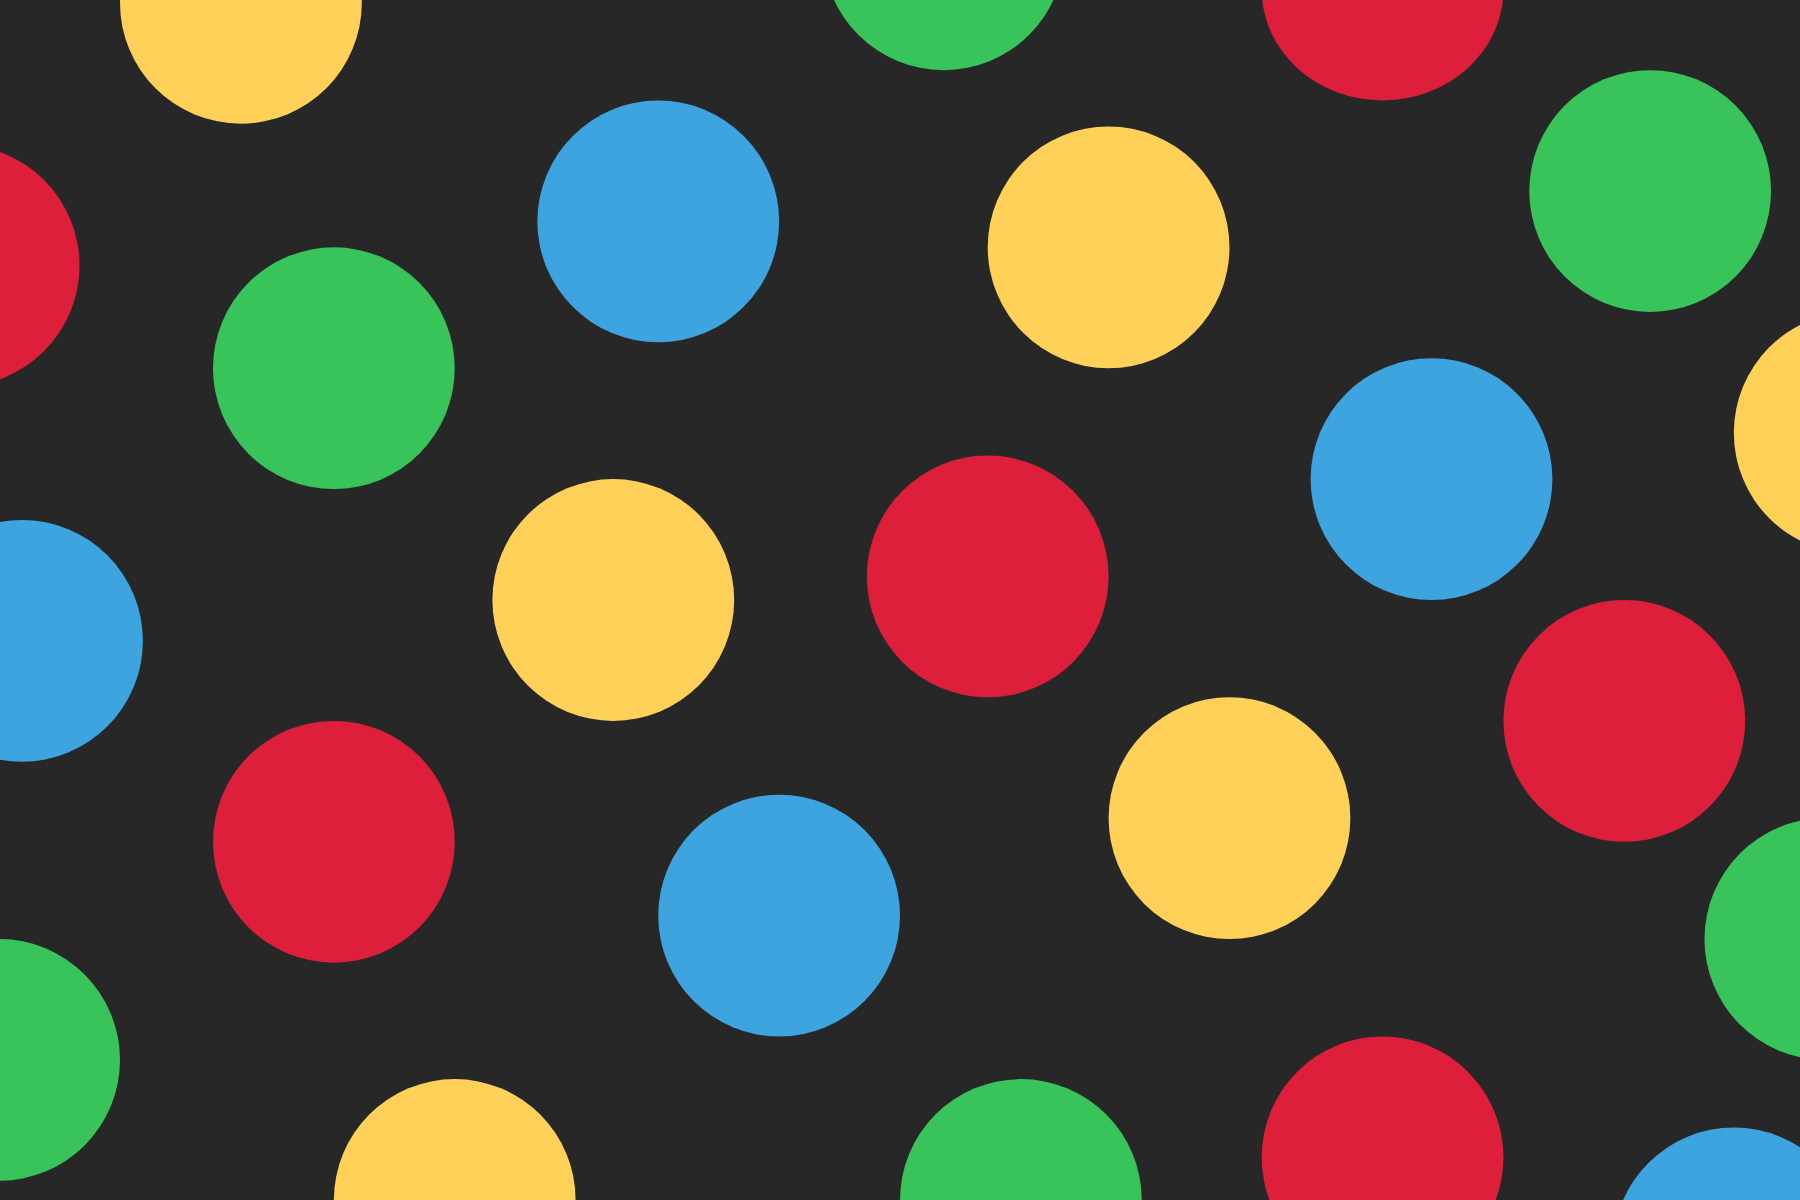 Hot-Dots: A New Product from FireAvert